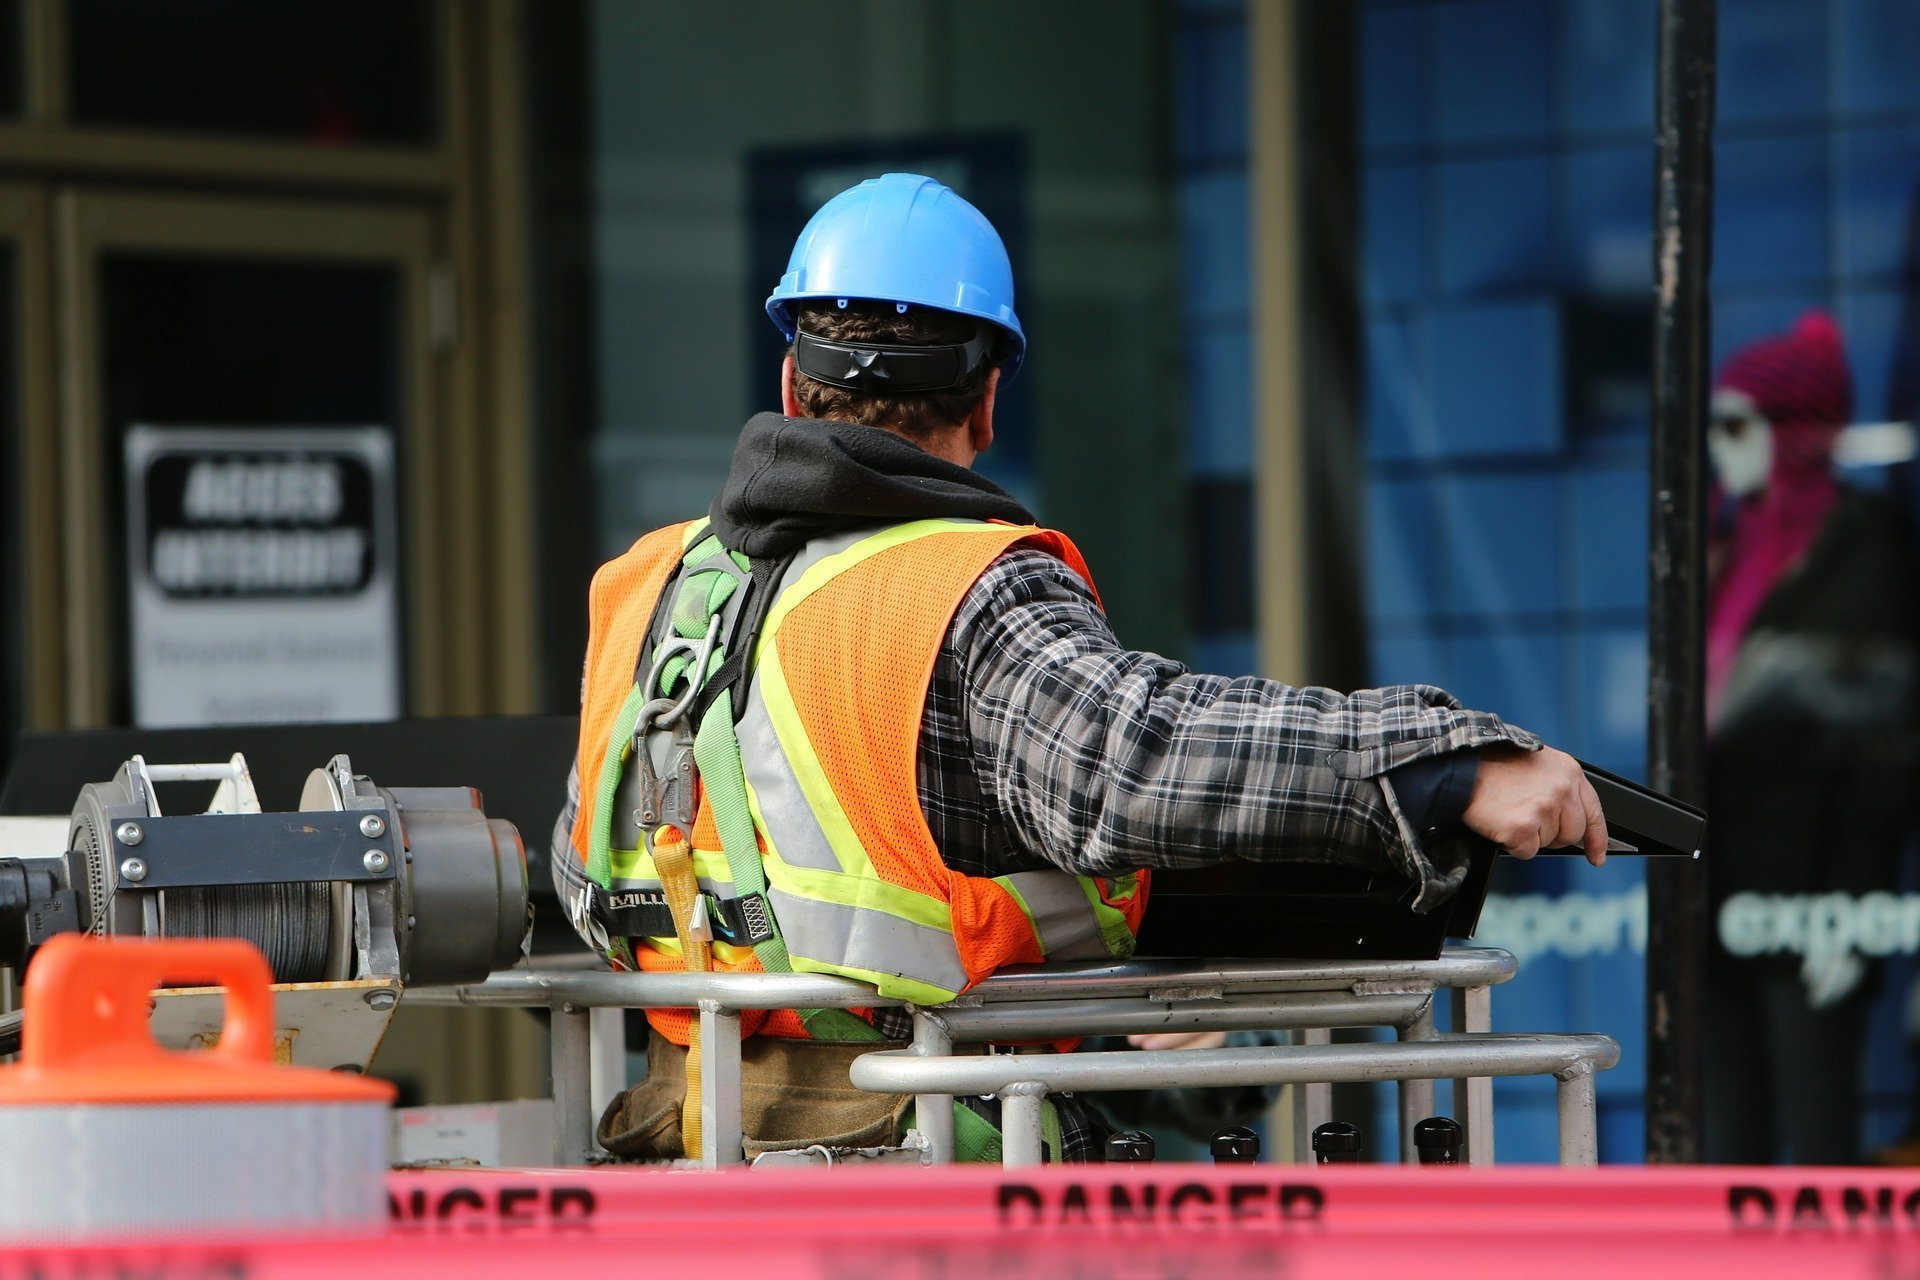 Construction worker on site